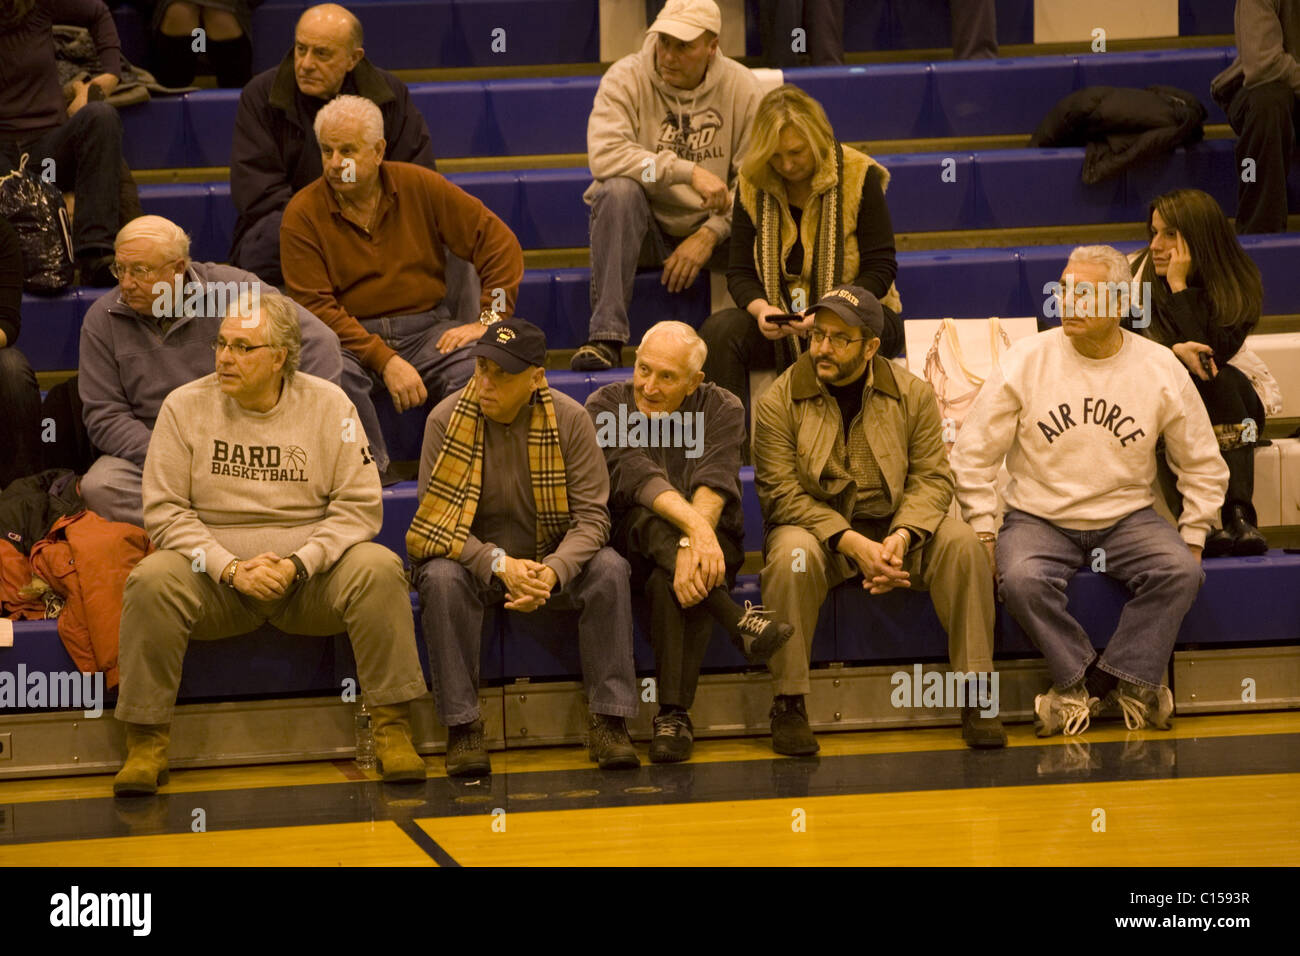 Older alumni from Bard College watch their college basketball team play and lose to Yeshiva University in NYC. - Stock Image